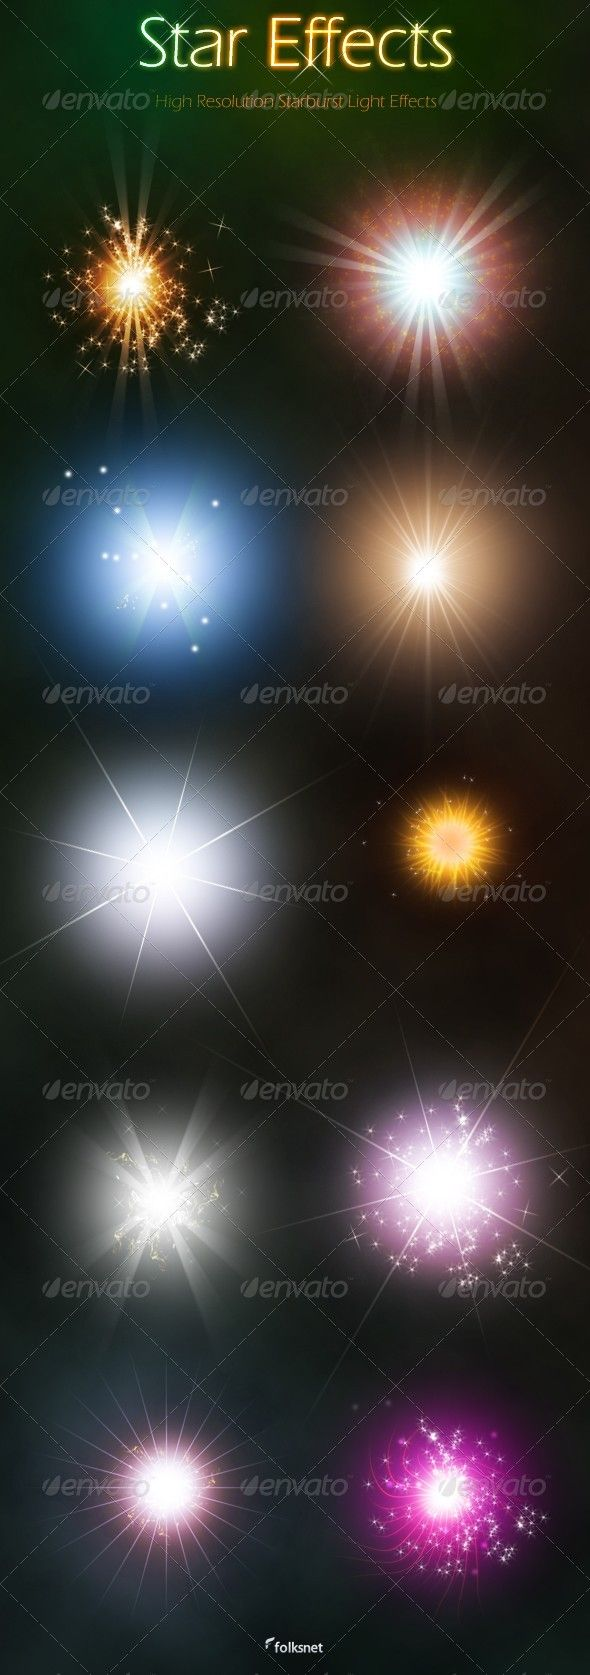 Star Effects - #Decorative #Graphics Download here: https://graphicriver.net/item/star-effects/150010?ref=alena994